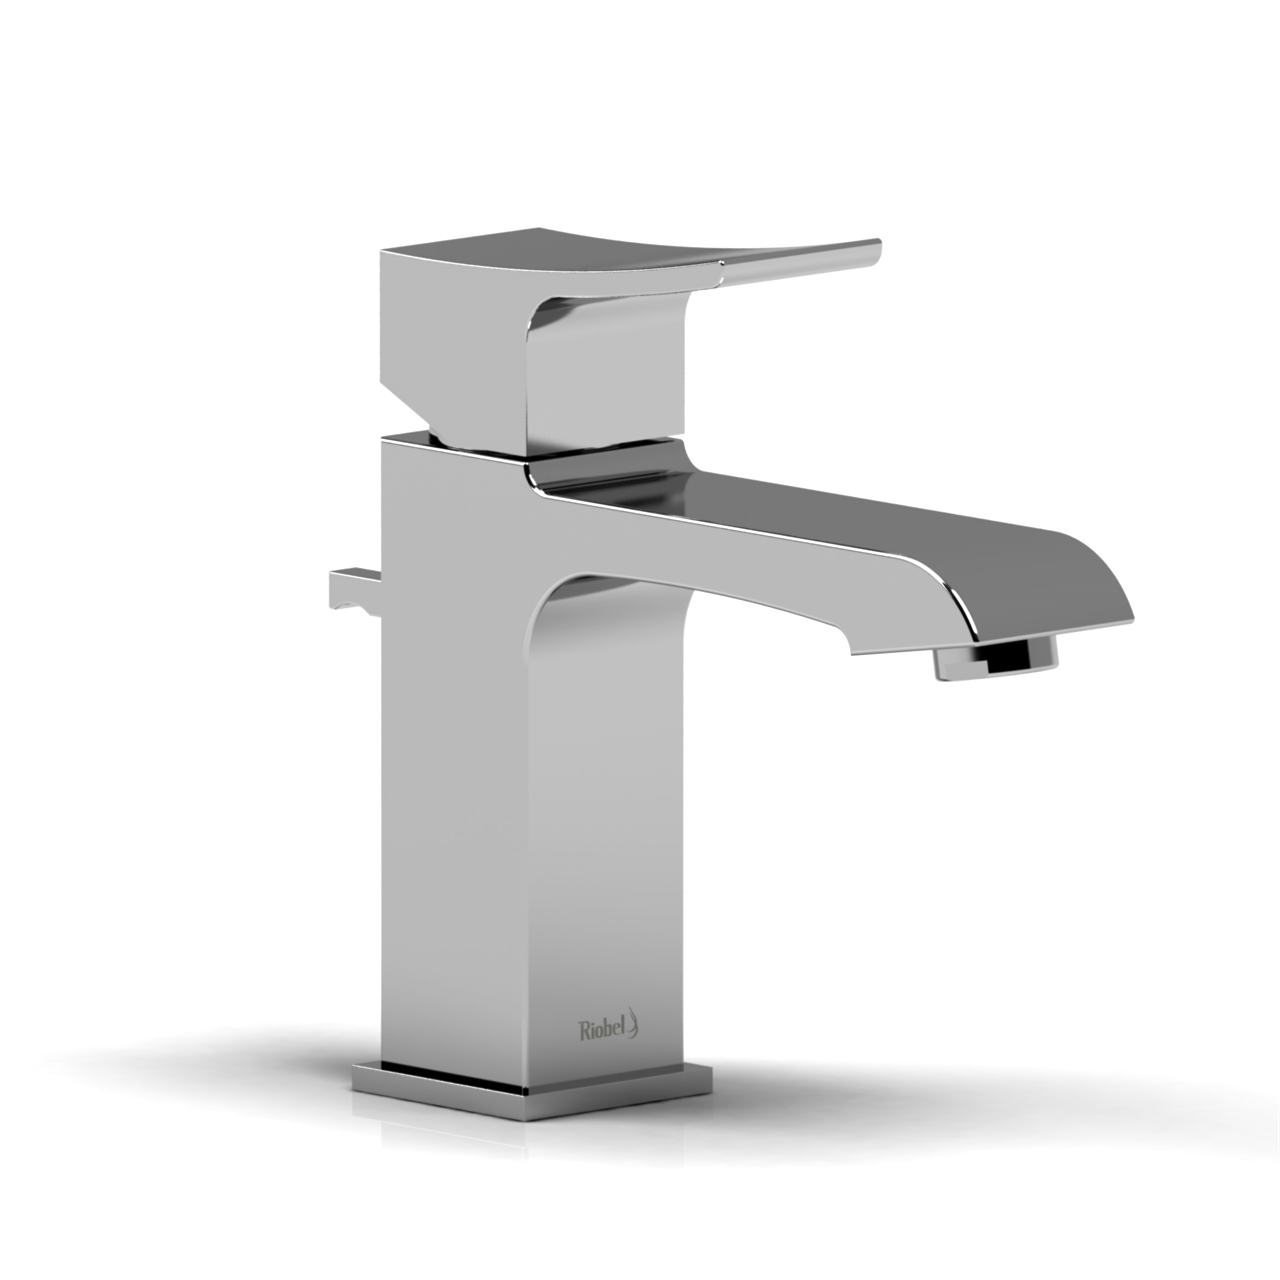 Riobel Zendo Single Hole Faucet Zs01 Bathroom Faucet For